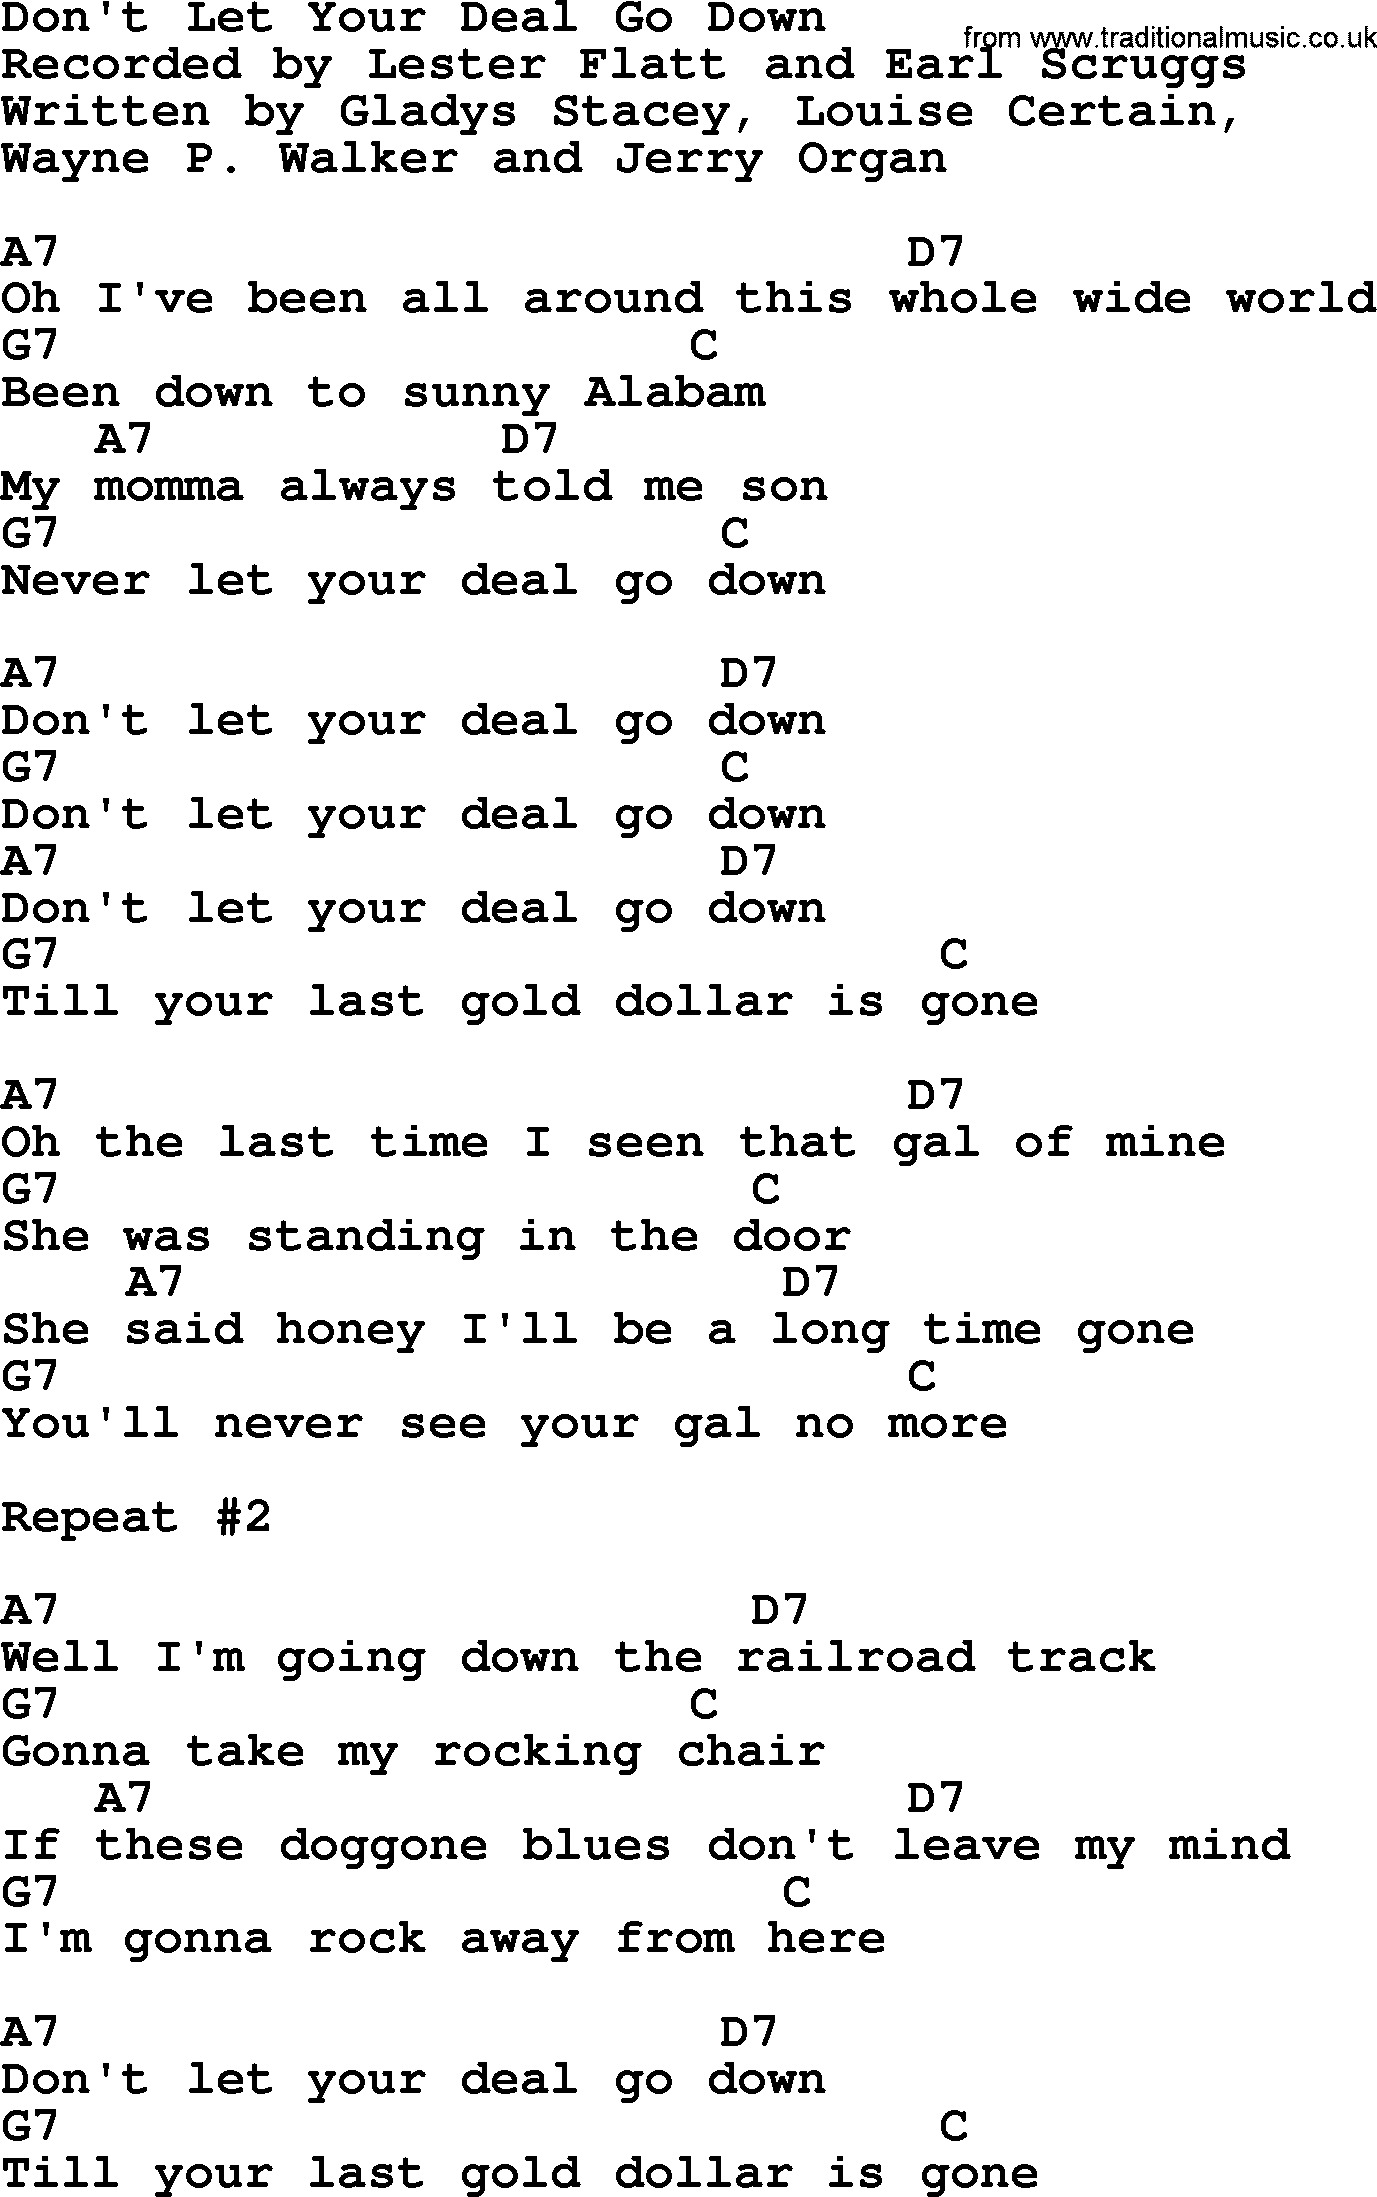 Dont let your deal go down bluegrass lyrics with chords bluegrass song dont let your deal go down lyrics and chords hexwebz Gallery